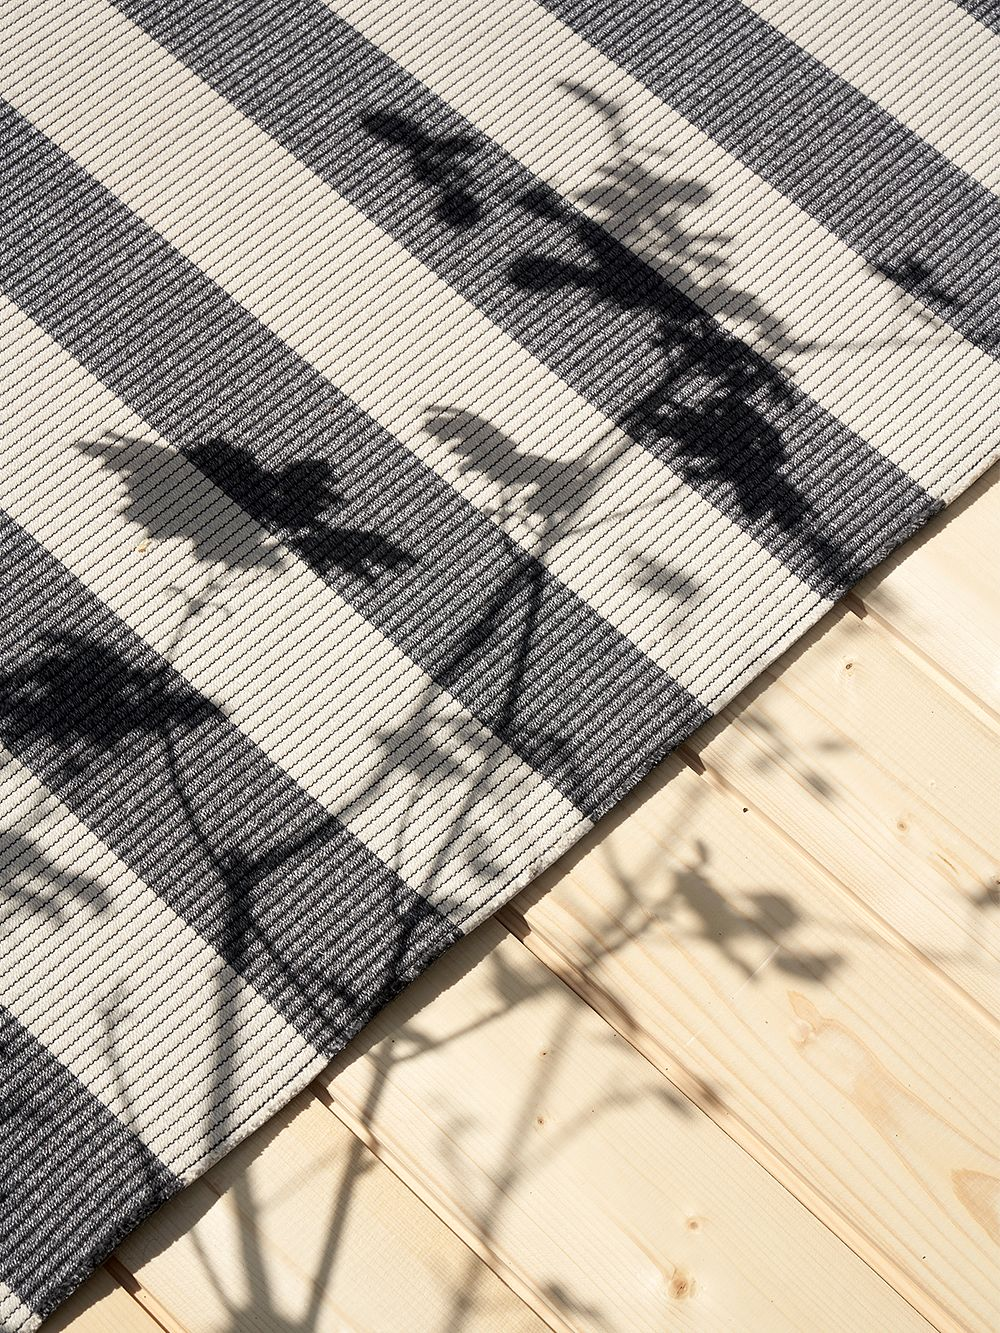 Big Stripe rug by Woodnotes against a wooden floor.